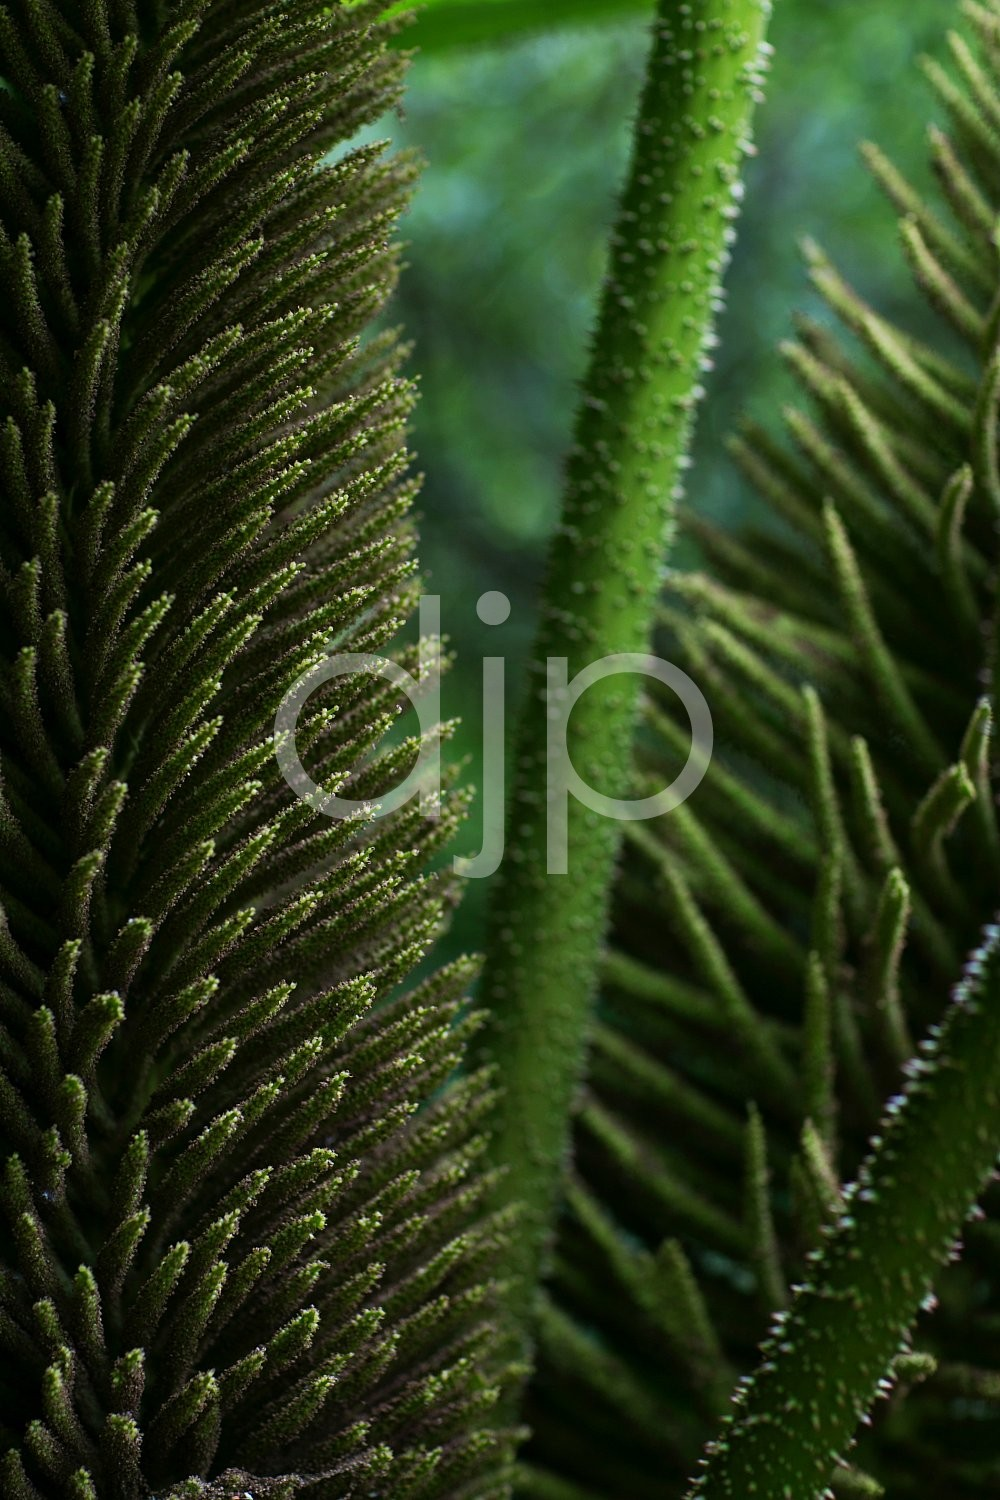 D Jones Photography, McMenamins Edgefield, djonesphoto, gardens, green, oregon, abstract